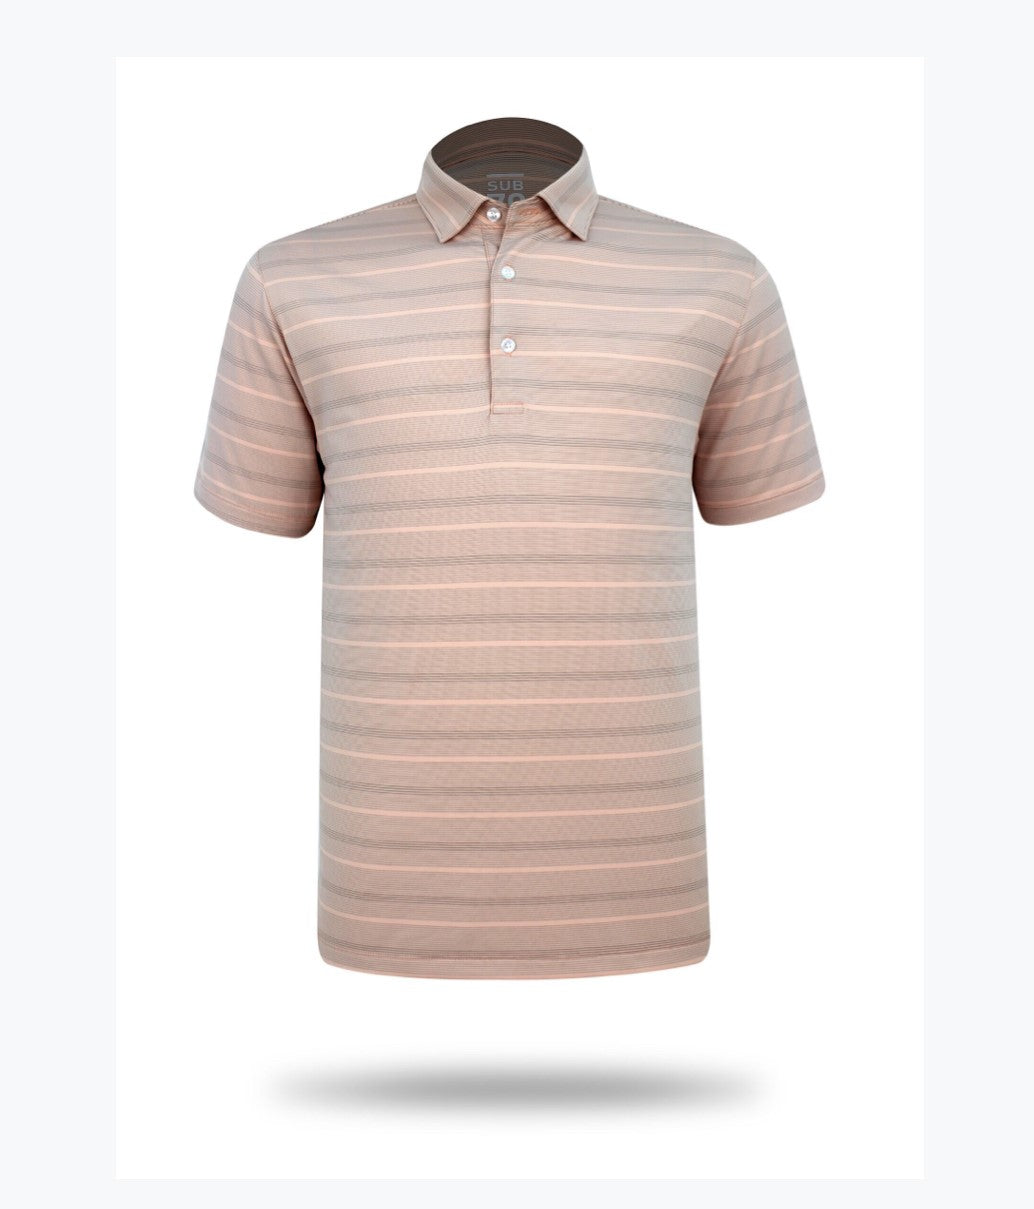 Sub 70 Tour Classic Polo Stripe #17 Blush/Grey